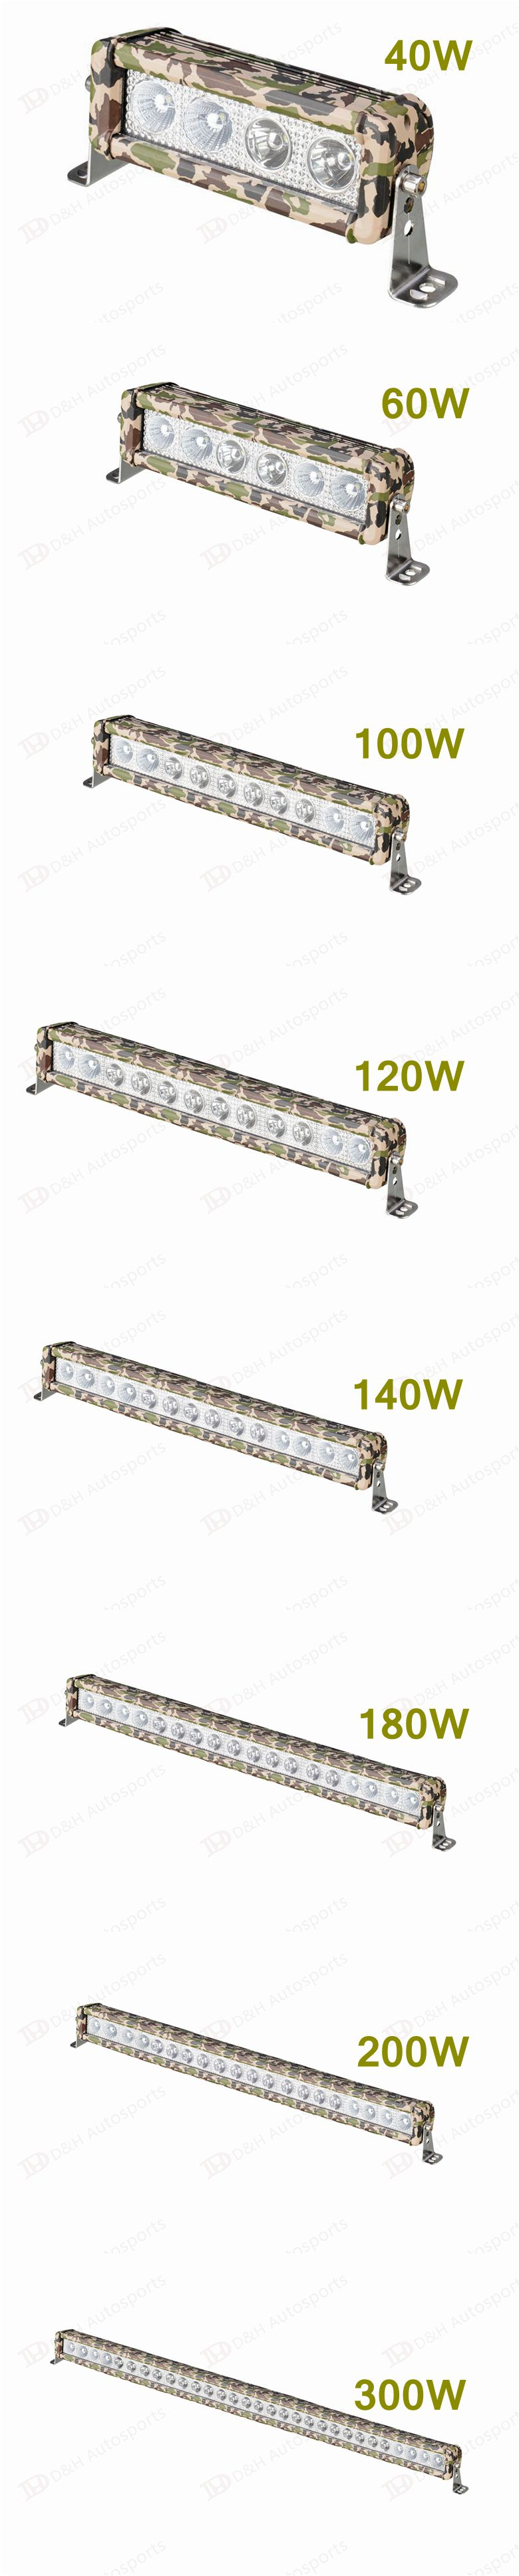 Camouflage Single row CREE Led Work Light Bar For Off-road